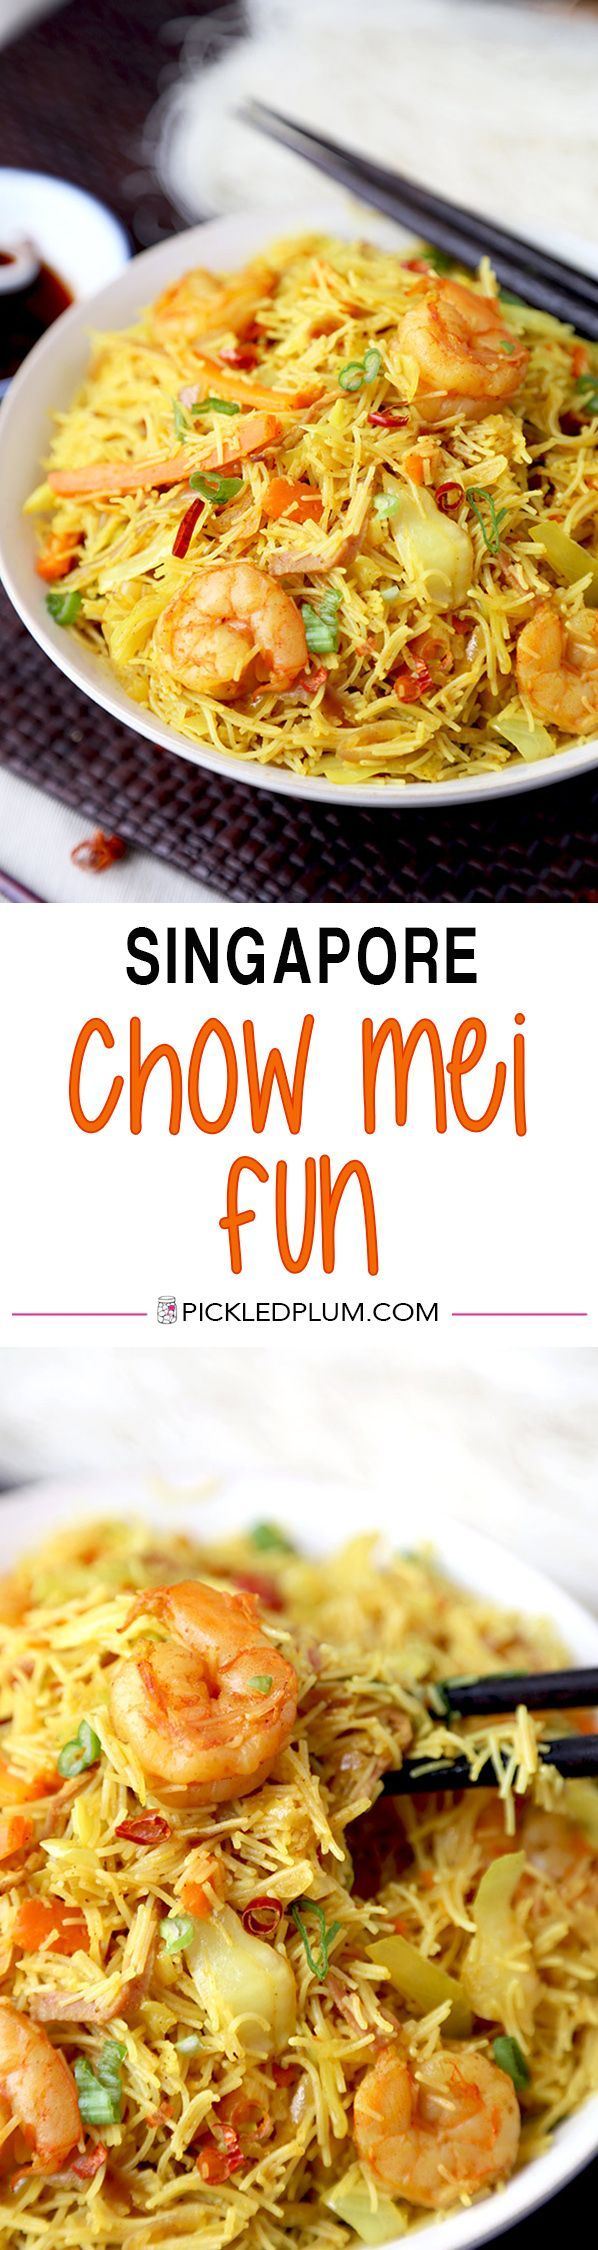 Singapore Chow Mei Fun Chinese Food